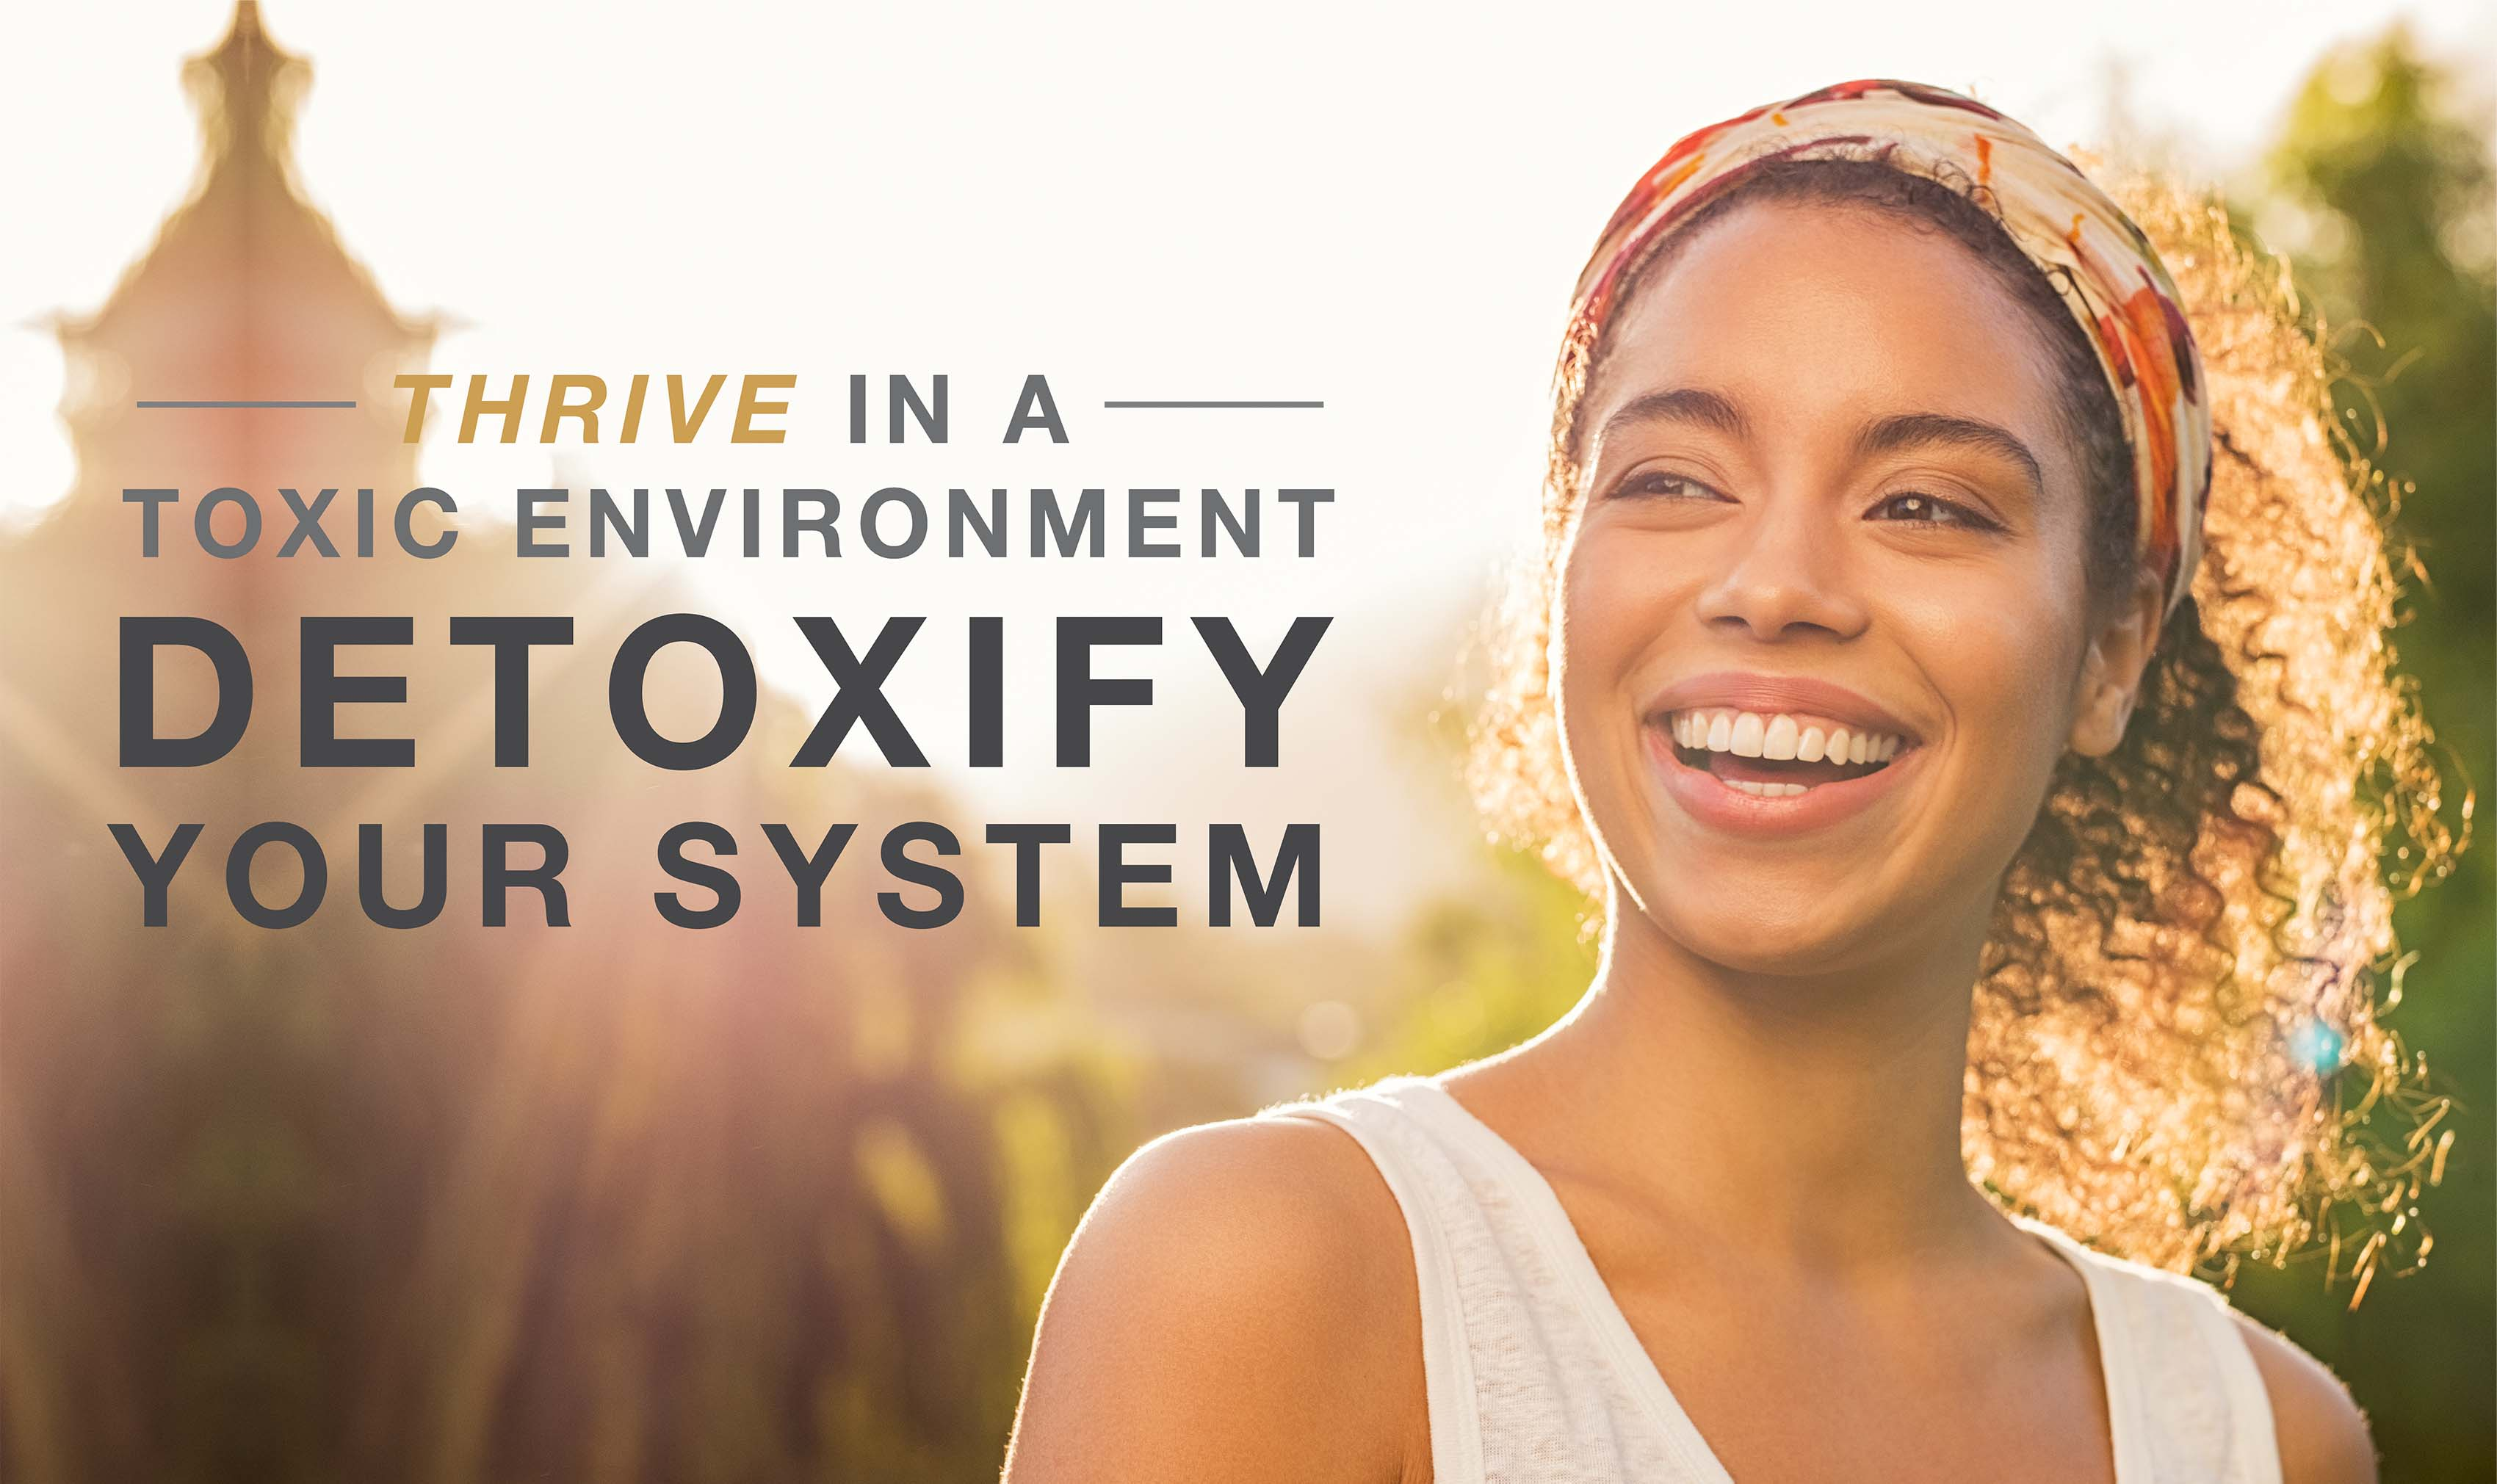 Thrive in a toxic environment and detoxify your system.